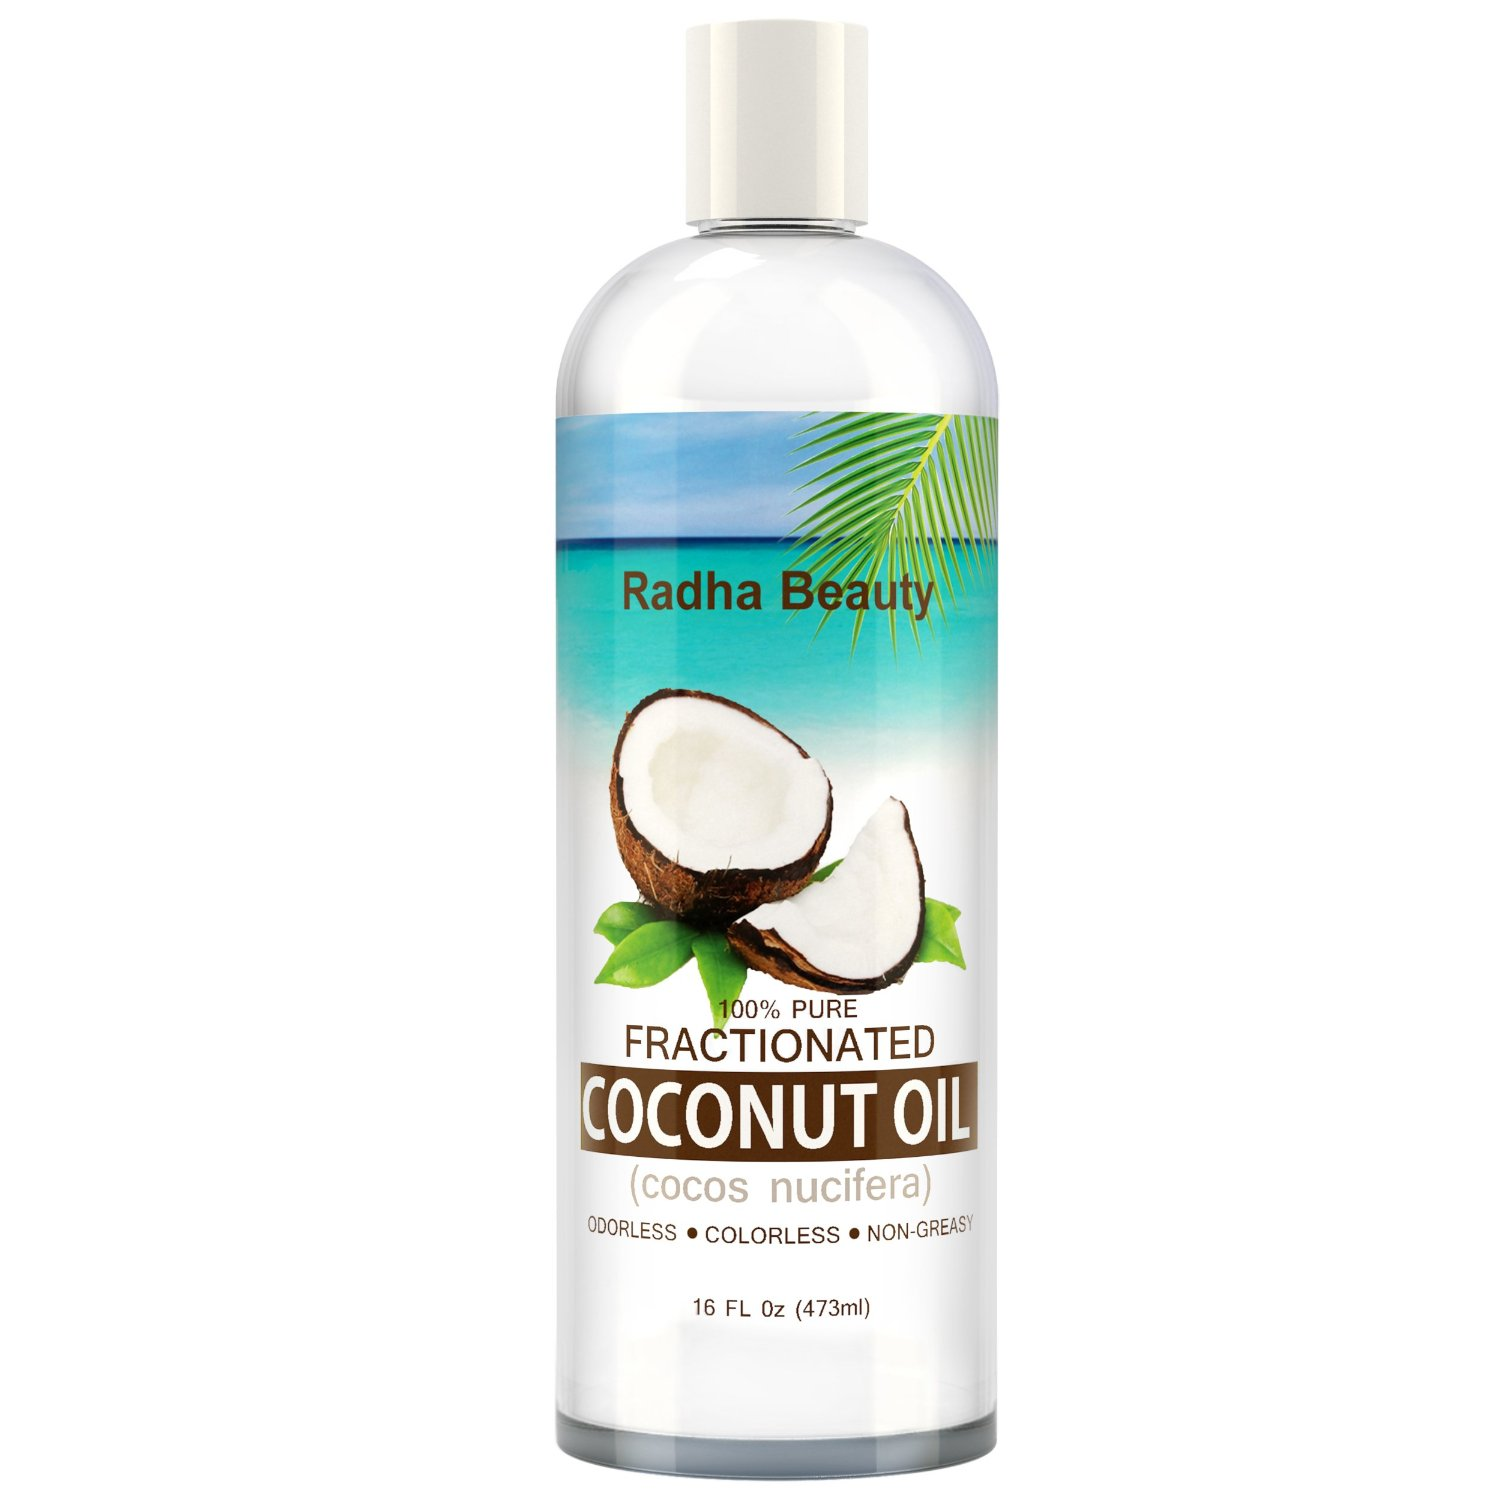 Cassandra M S Place Fractionated Coconut Oil Review